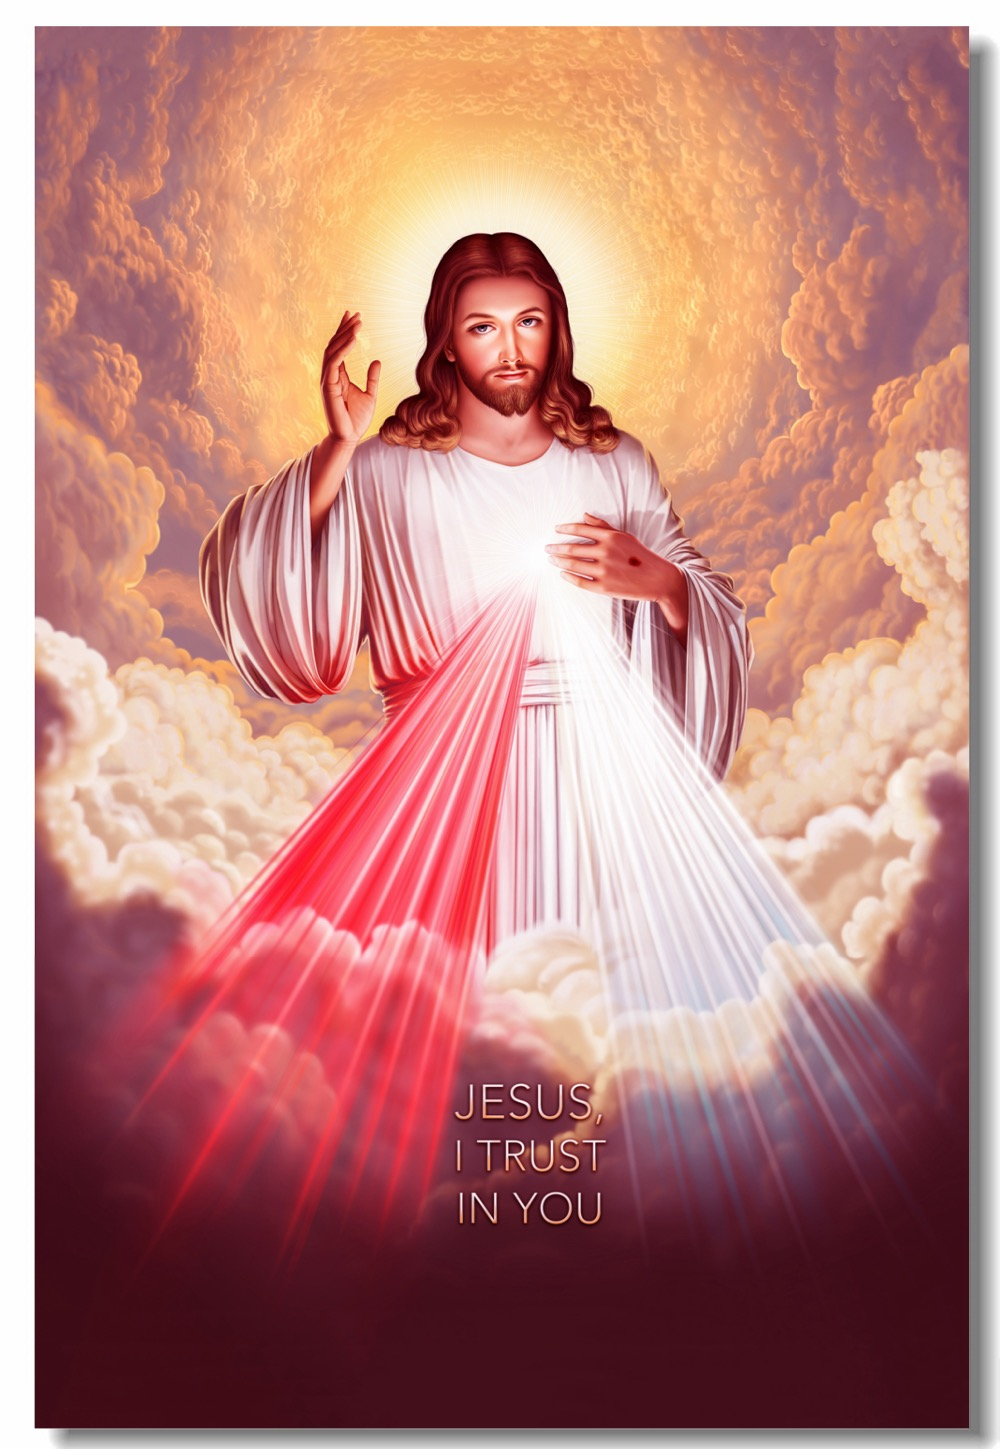 US $5 3 OFF Custom Canvas Wall Decor Jesus Christ Poster God Bless Second Ing Wall Sticker Divine Mercy Wallpaper Bedroom Painting 1024 Wall